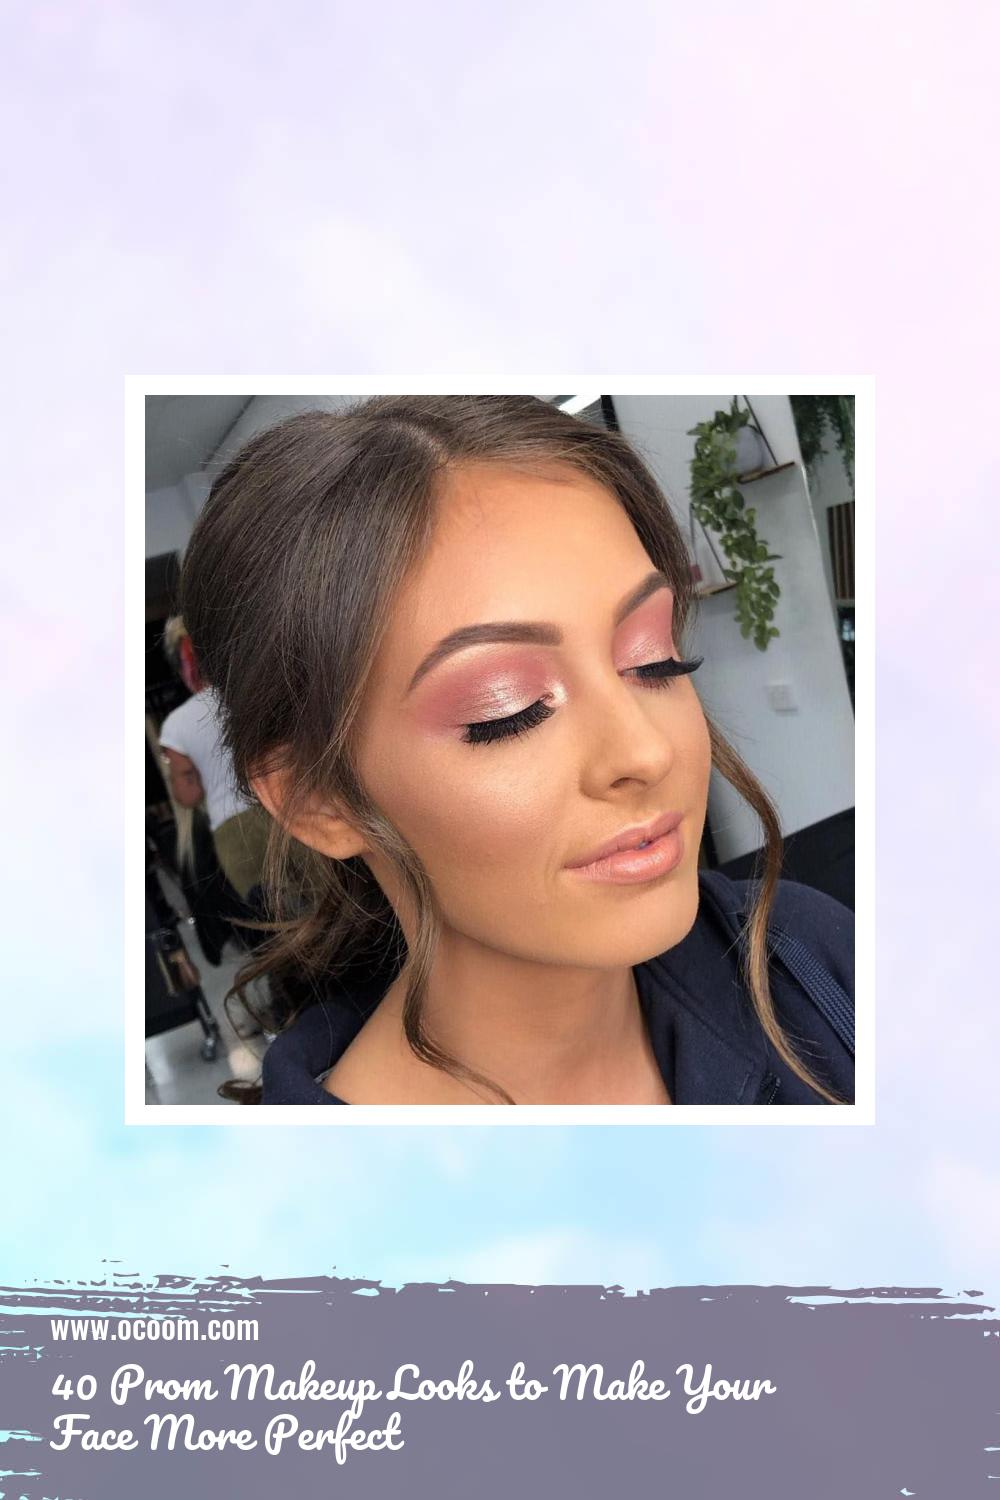 40 Prom Makeup Looks to Make Your Face More Perfect 3